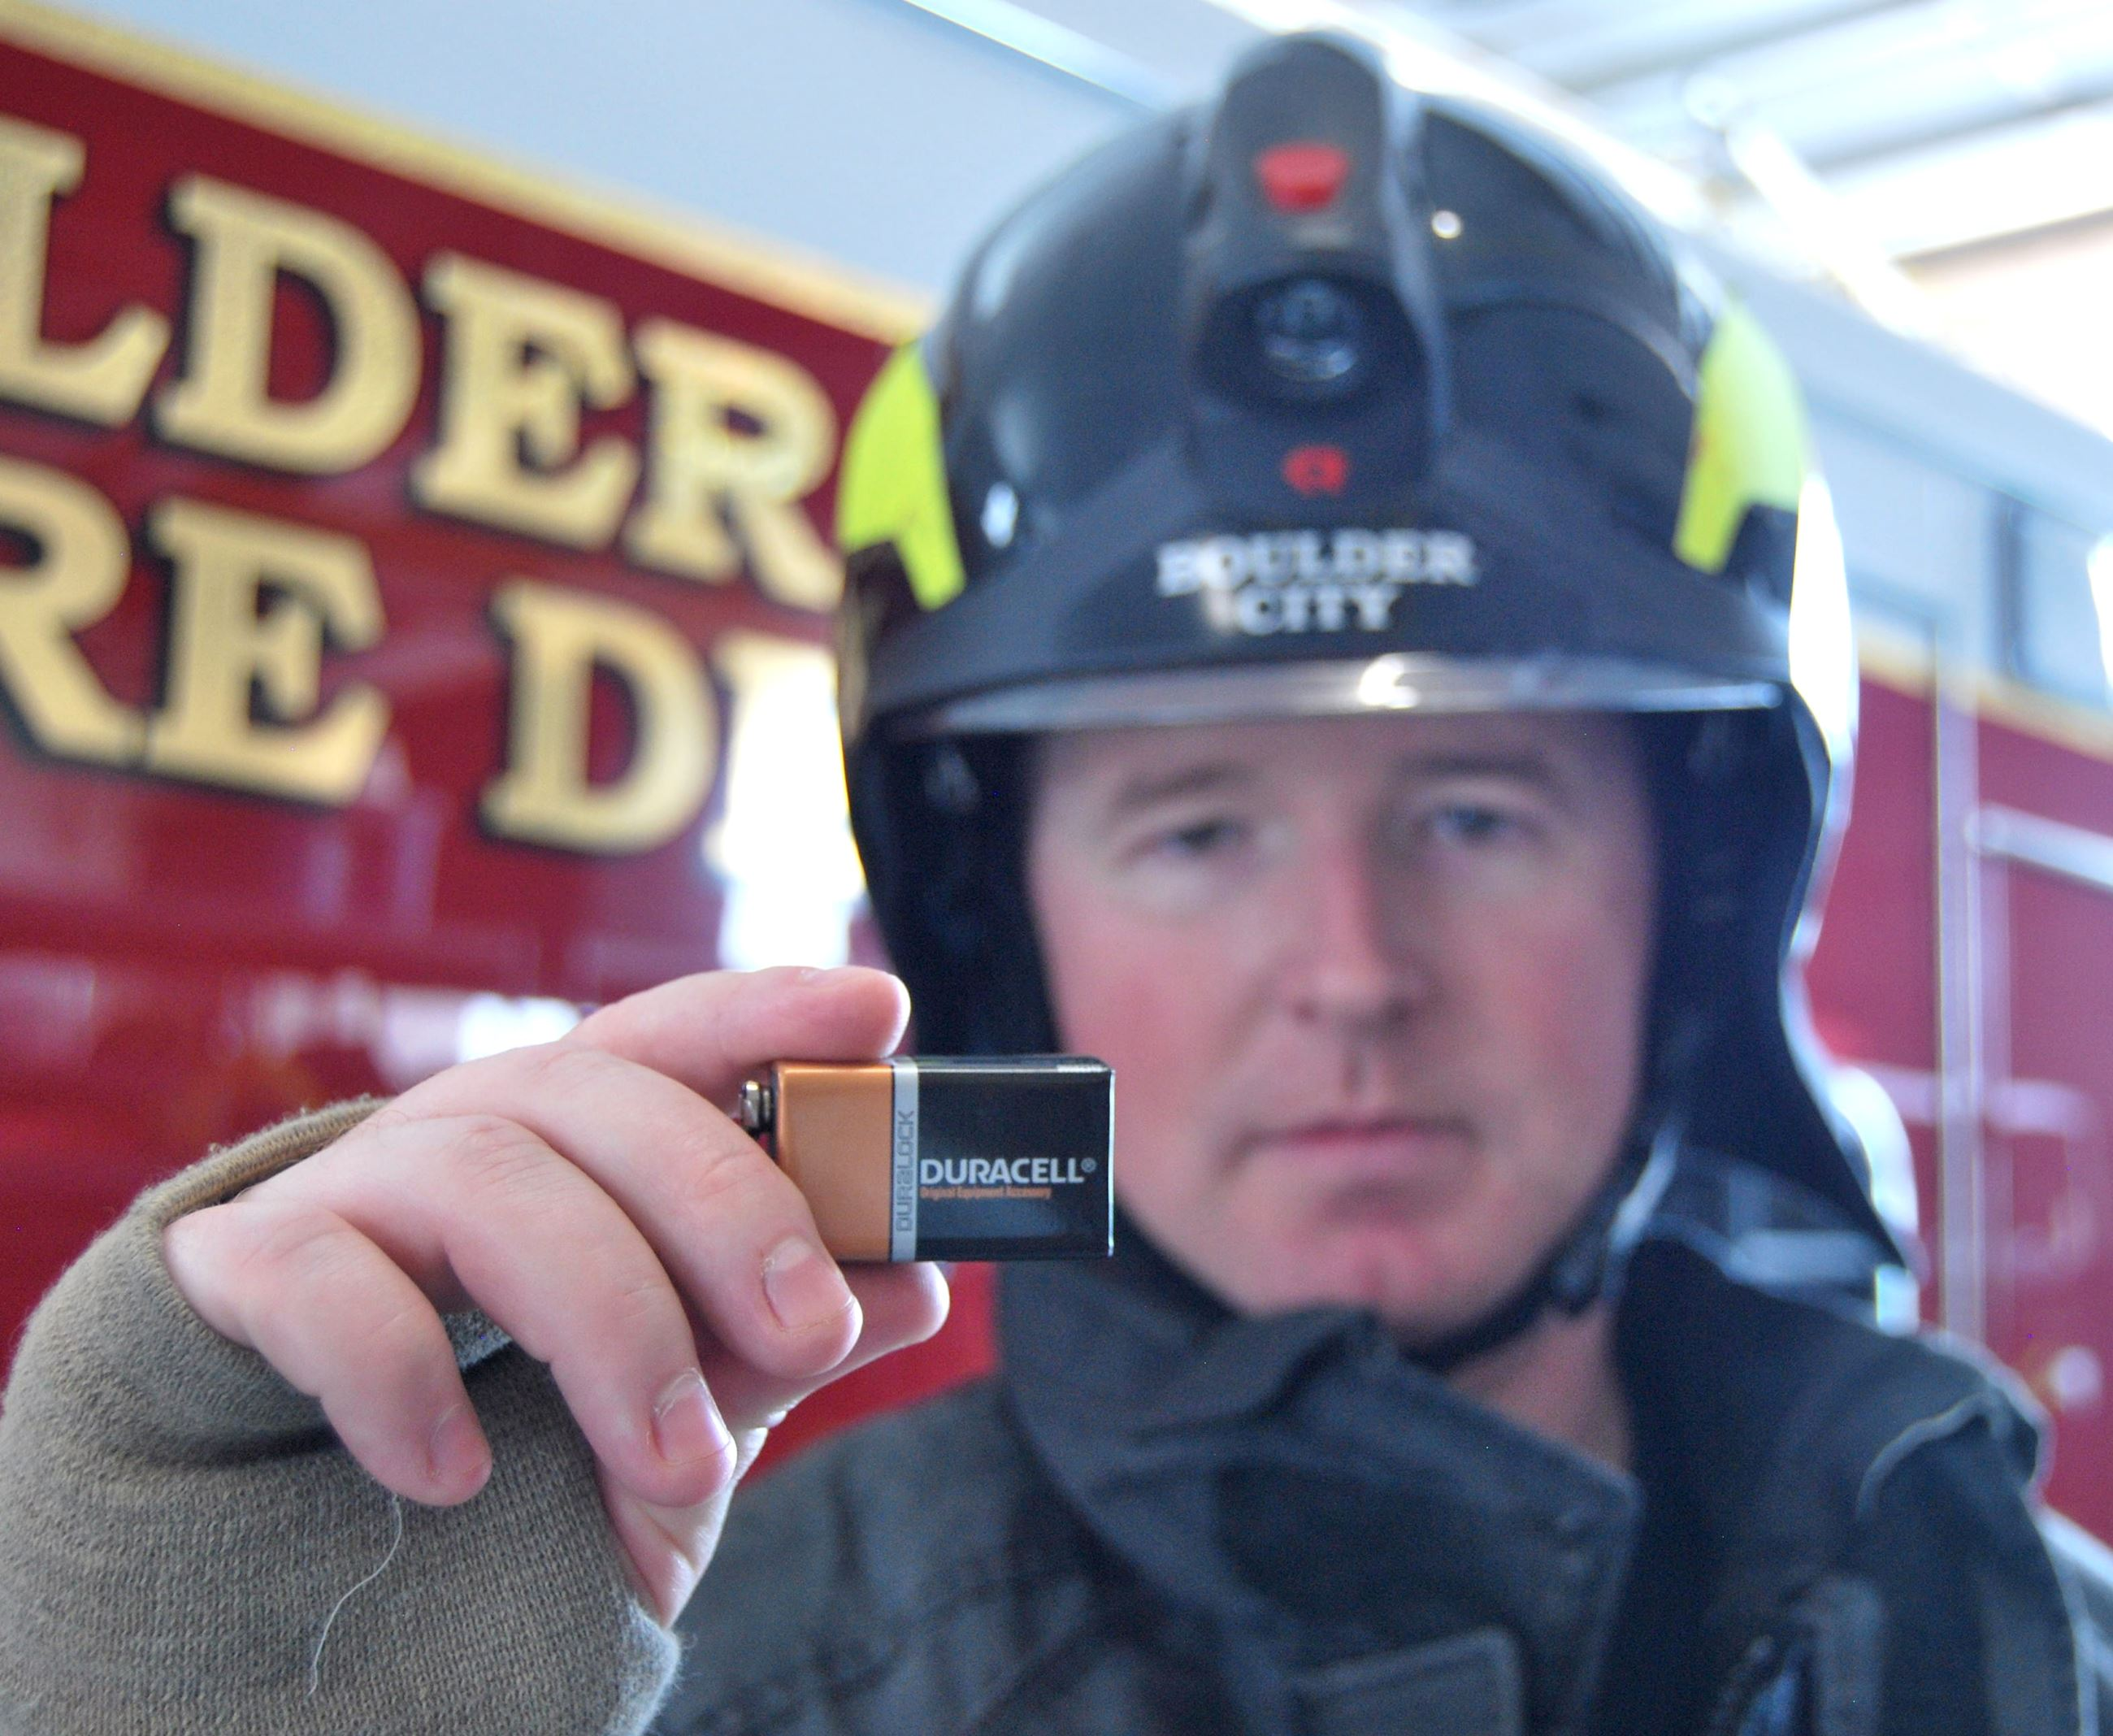 Firefighter holds a battery